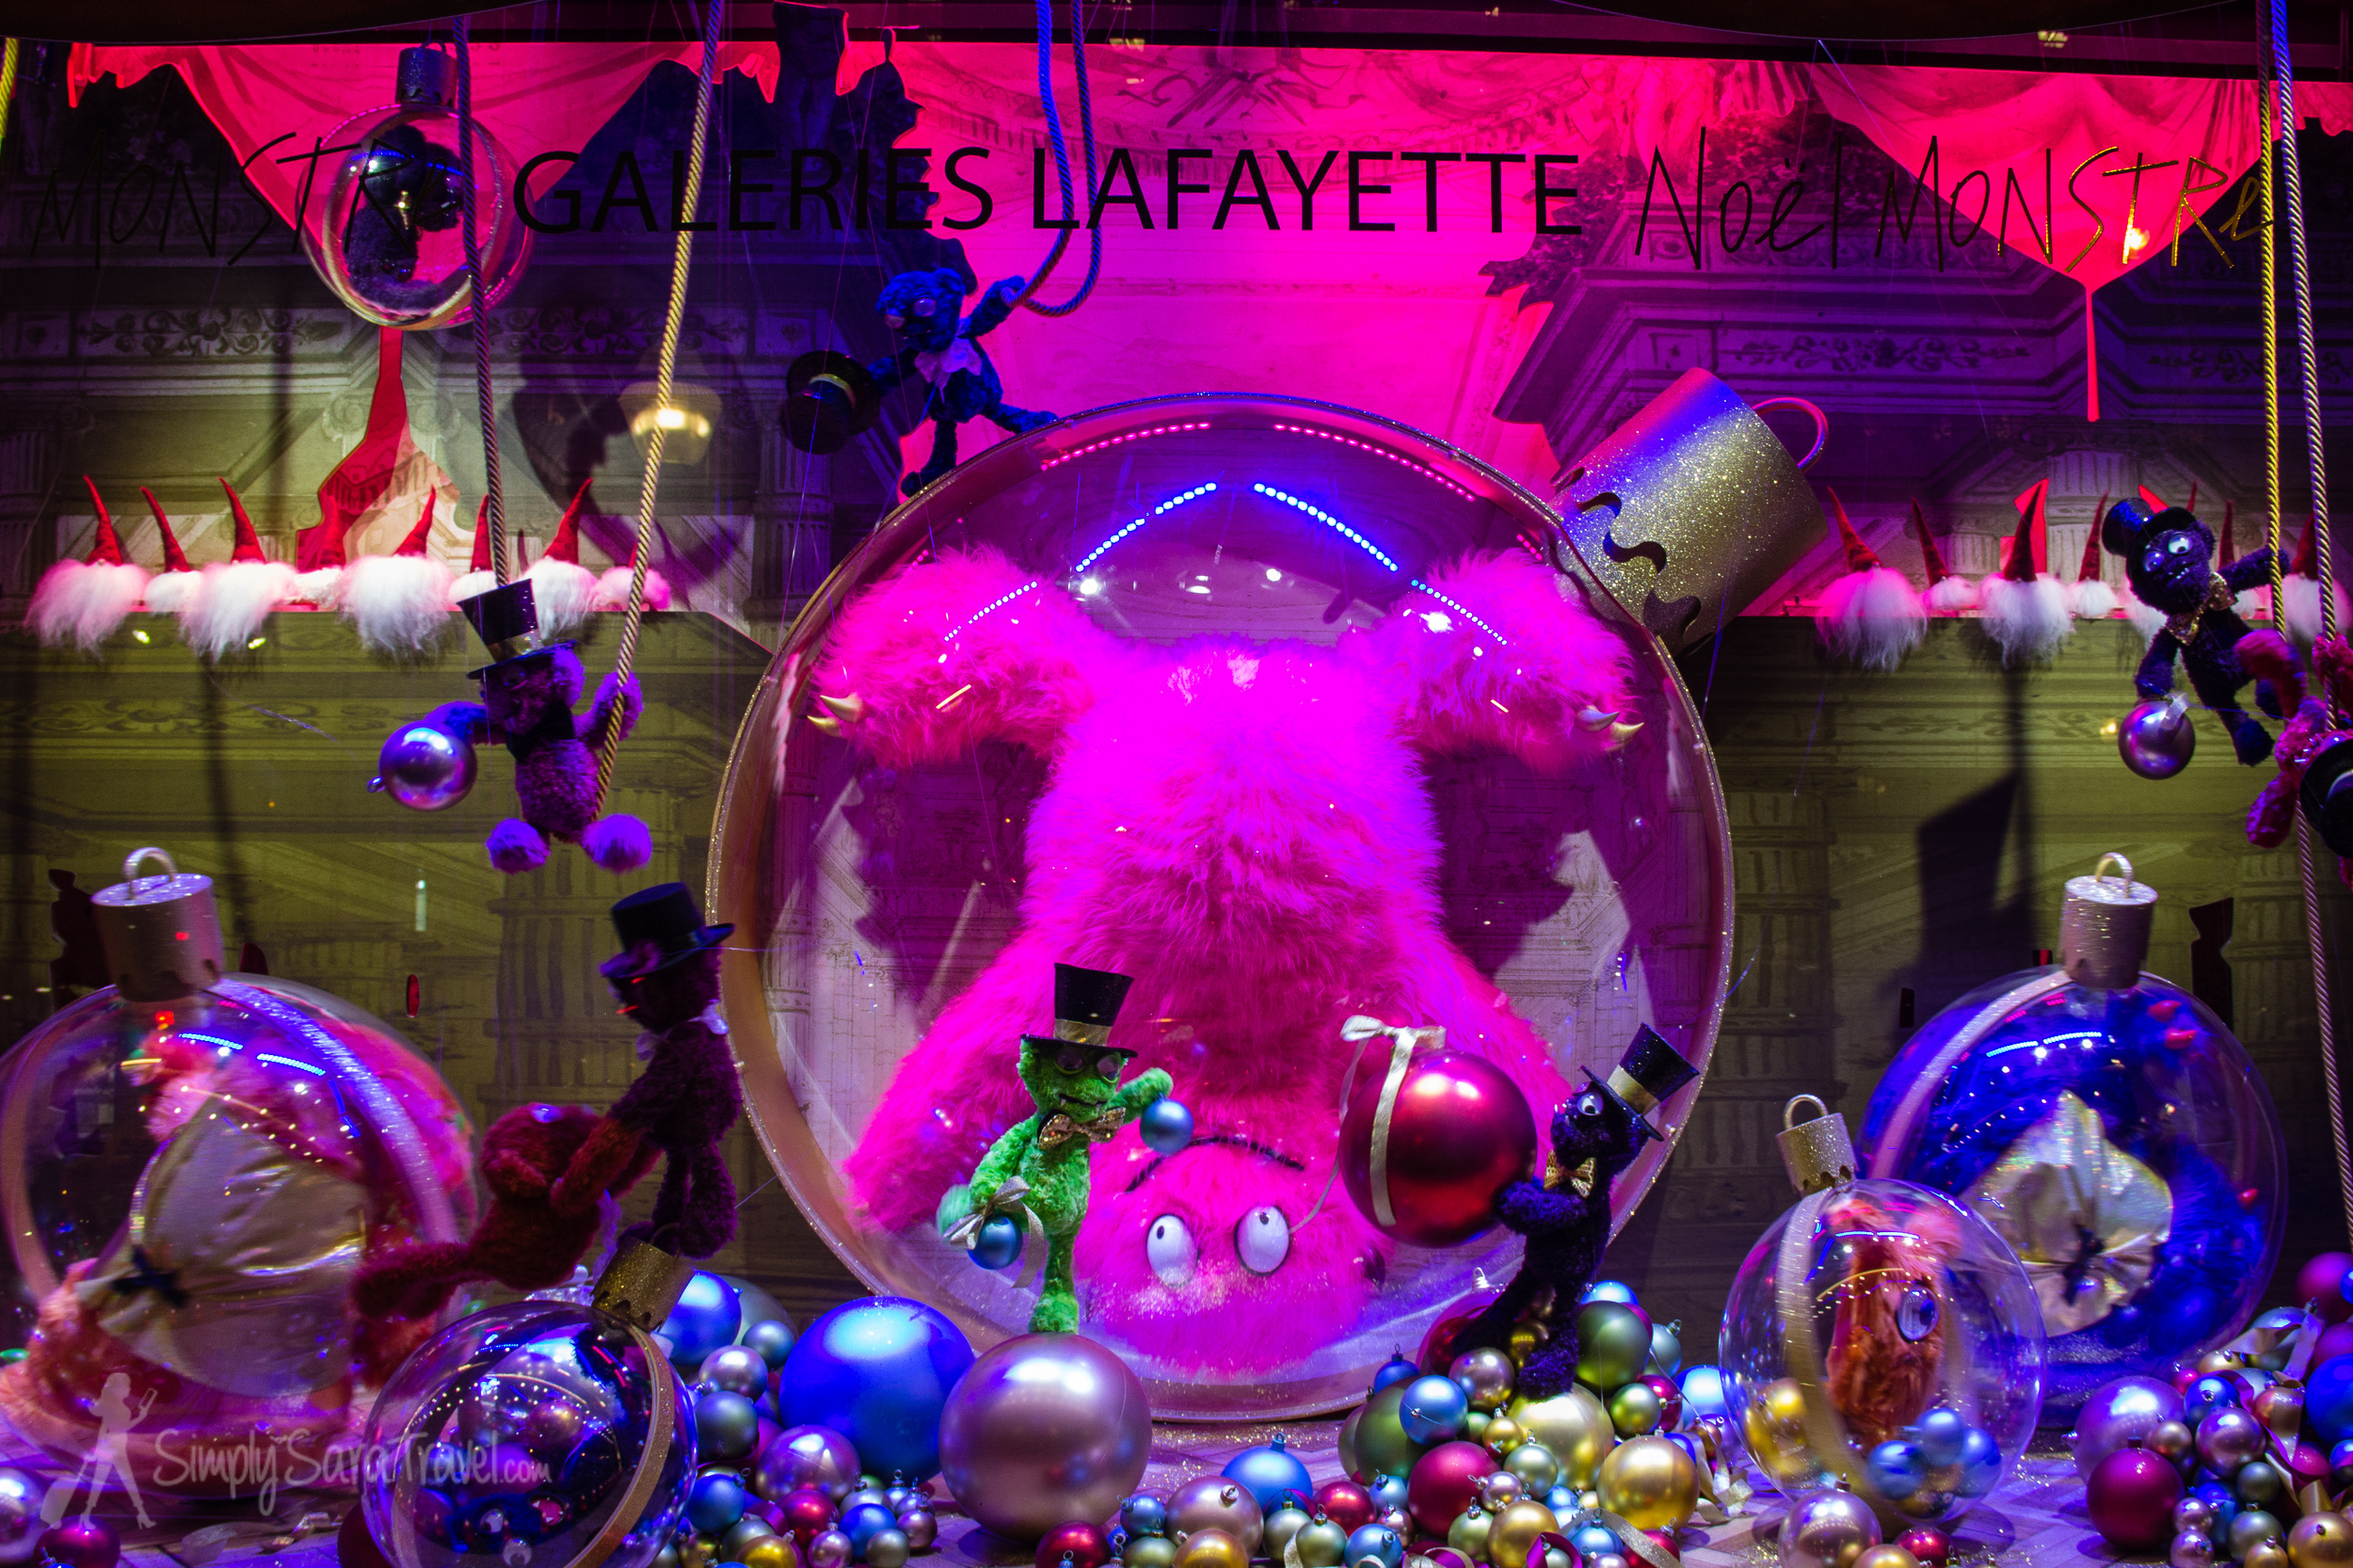 Gustave and friends have taken over Galeries Lafayette! To see a short clip of this window's animations, take a look at  my YouTube video .